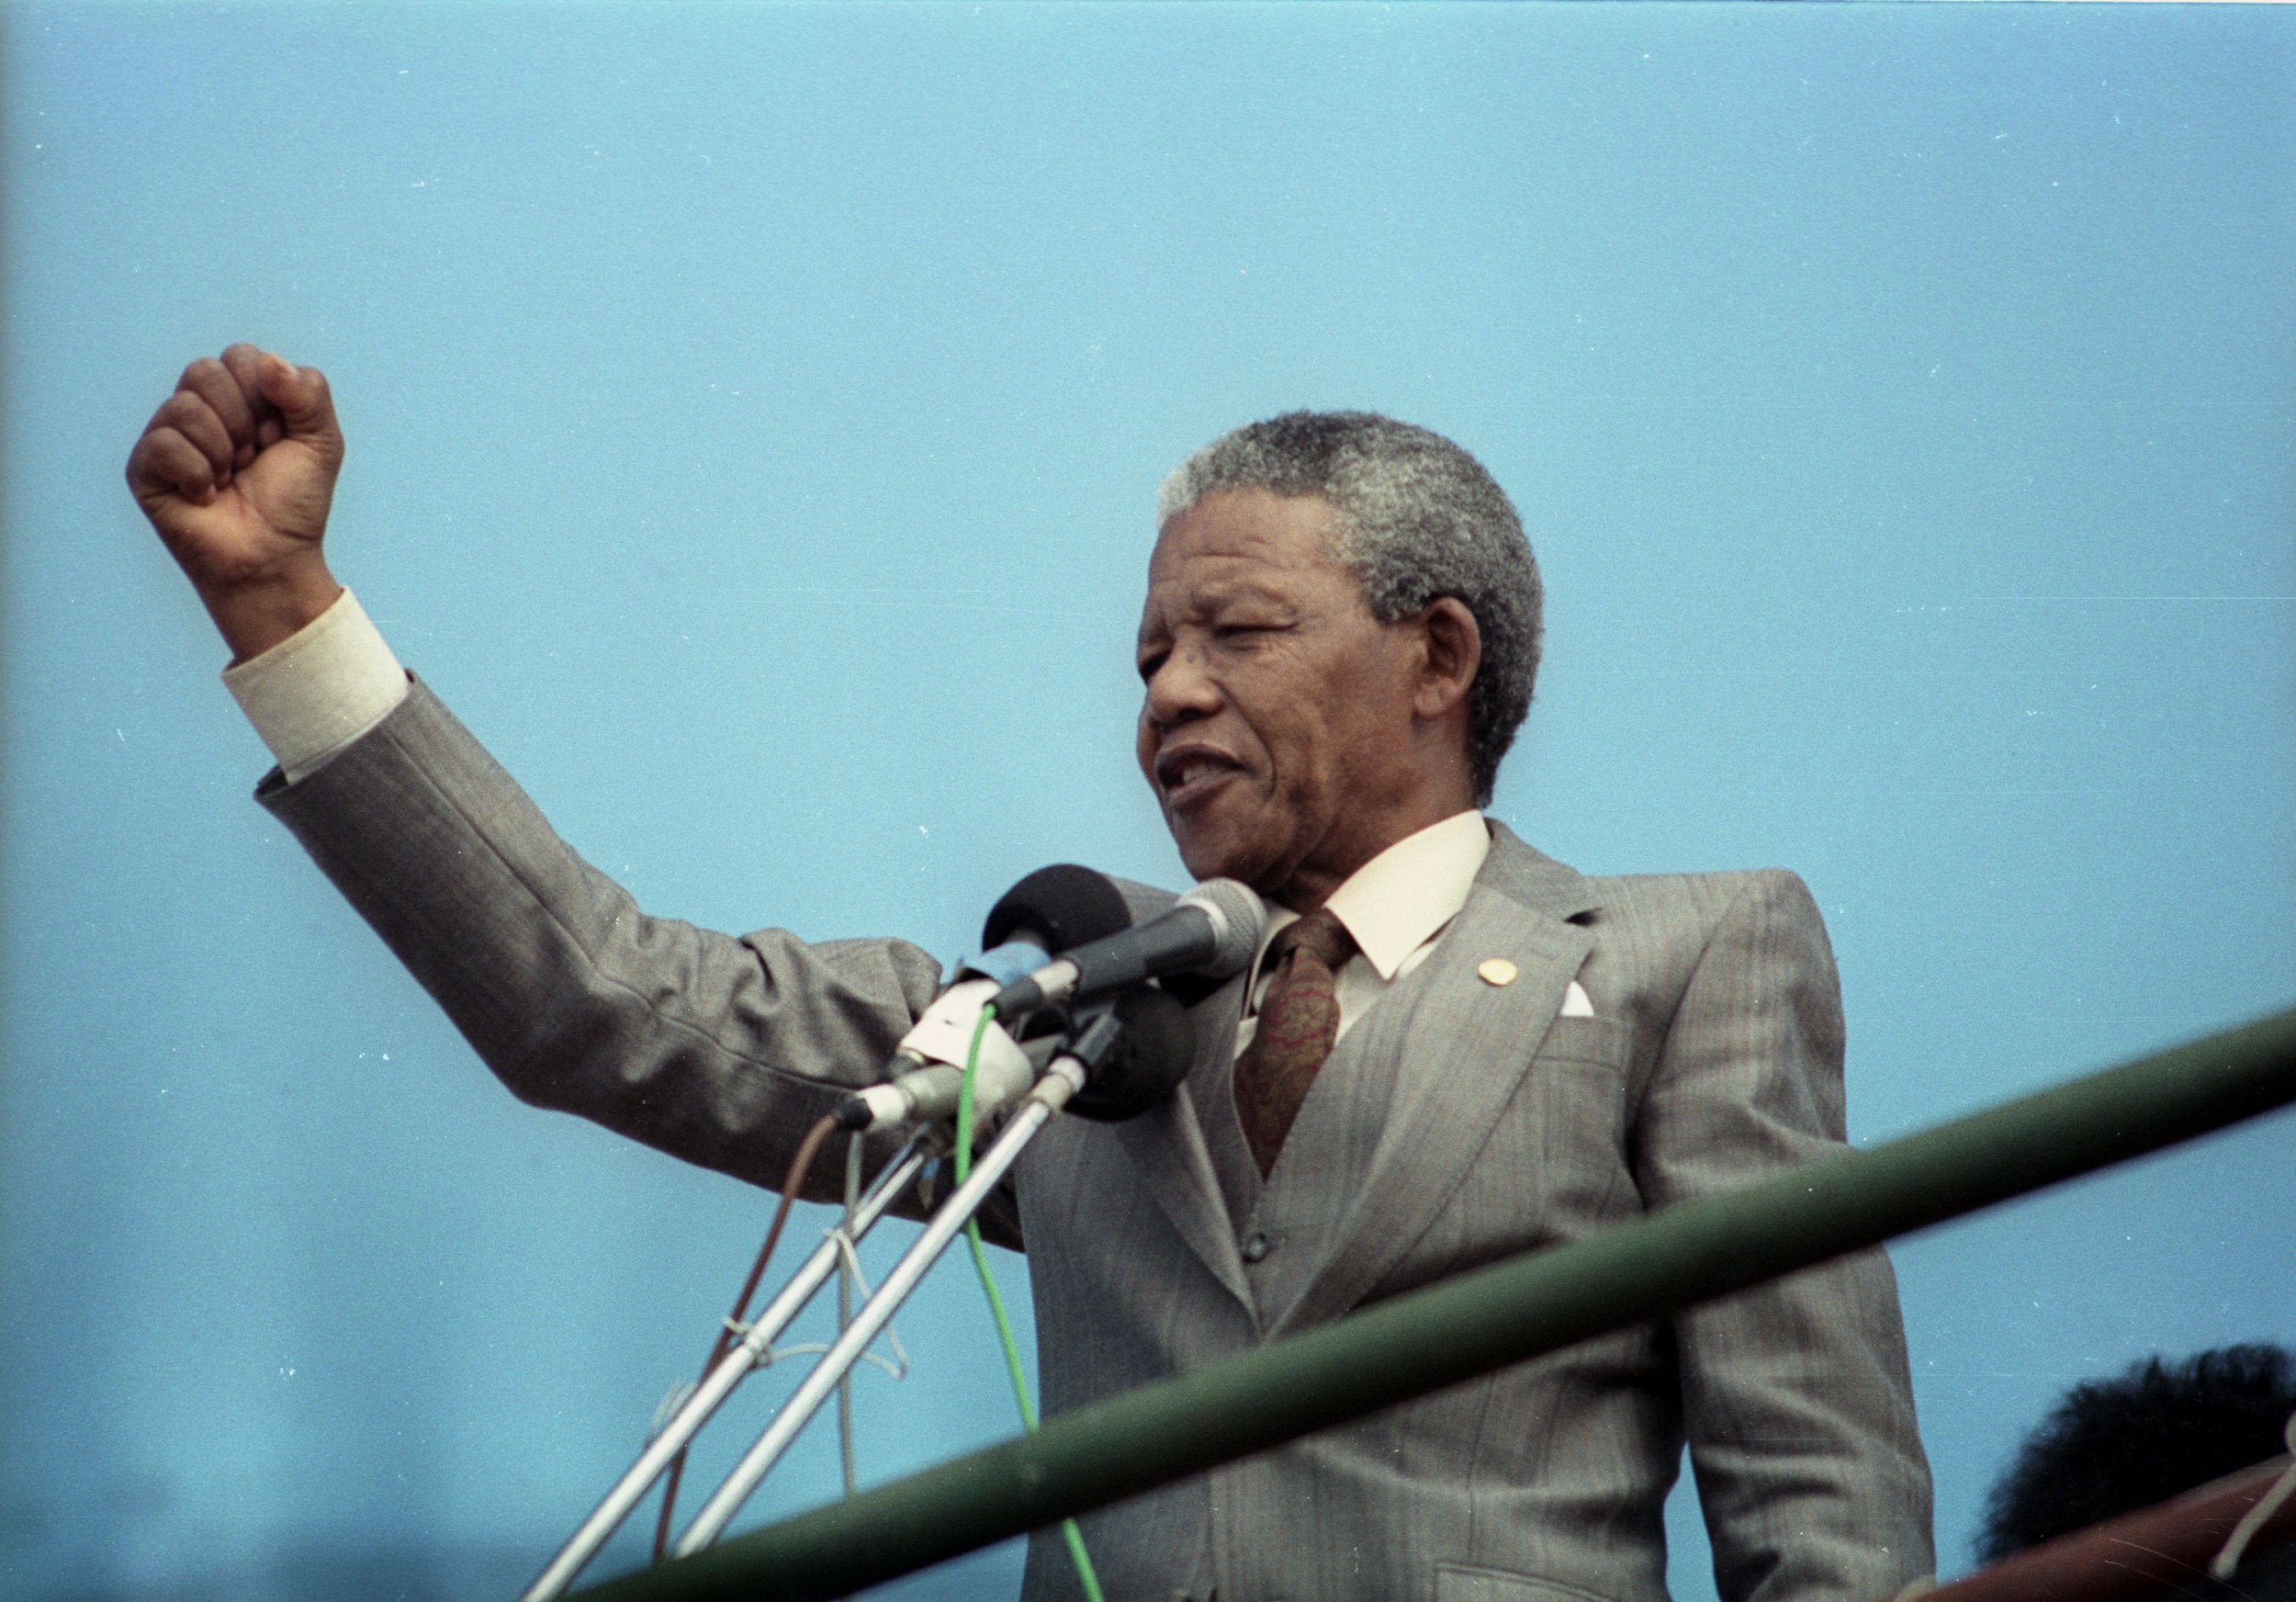 Nelson Mandela addresses crowd